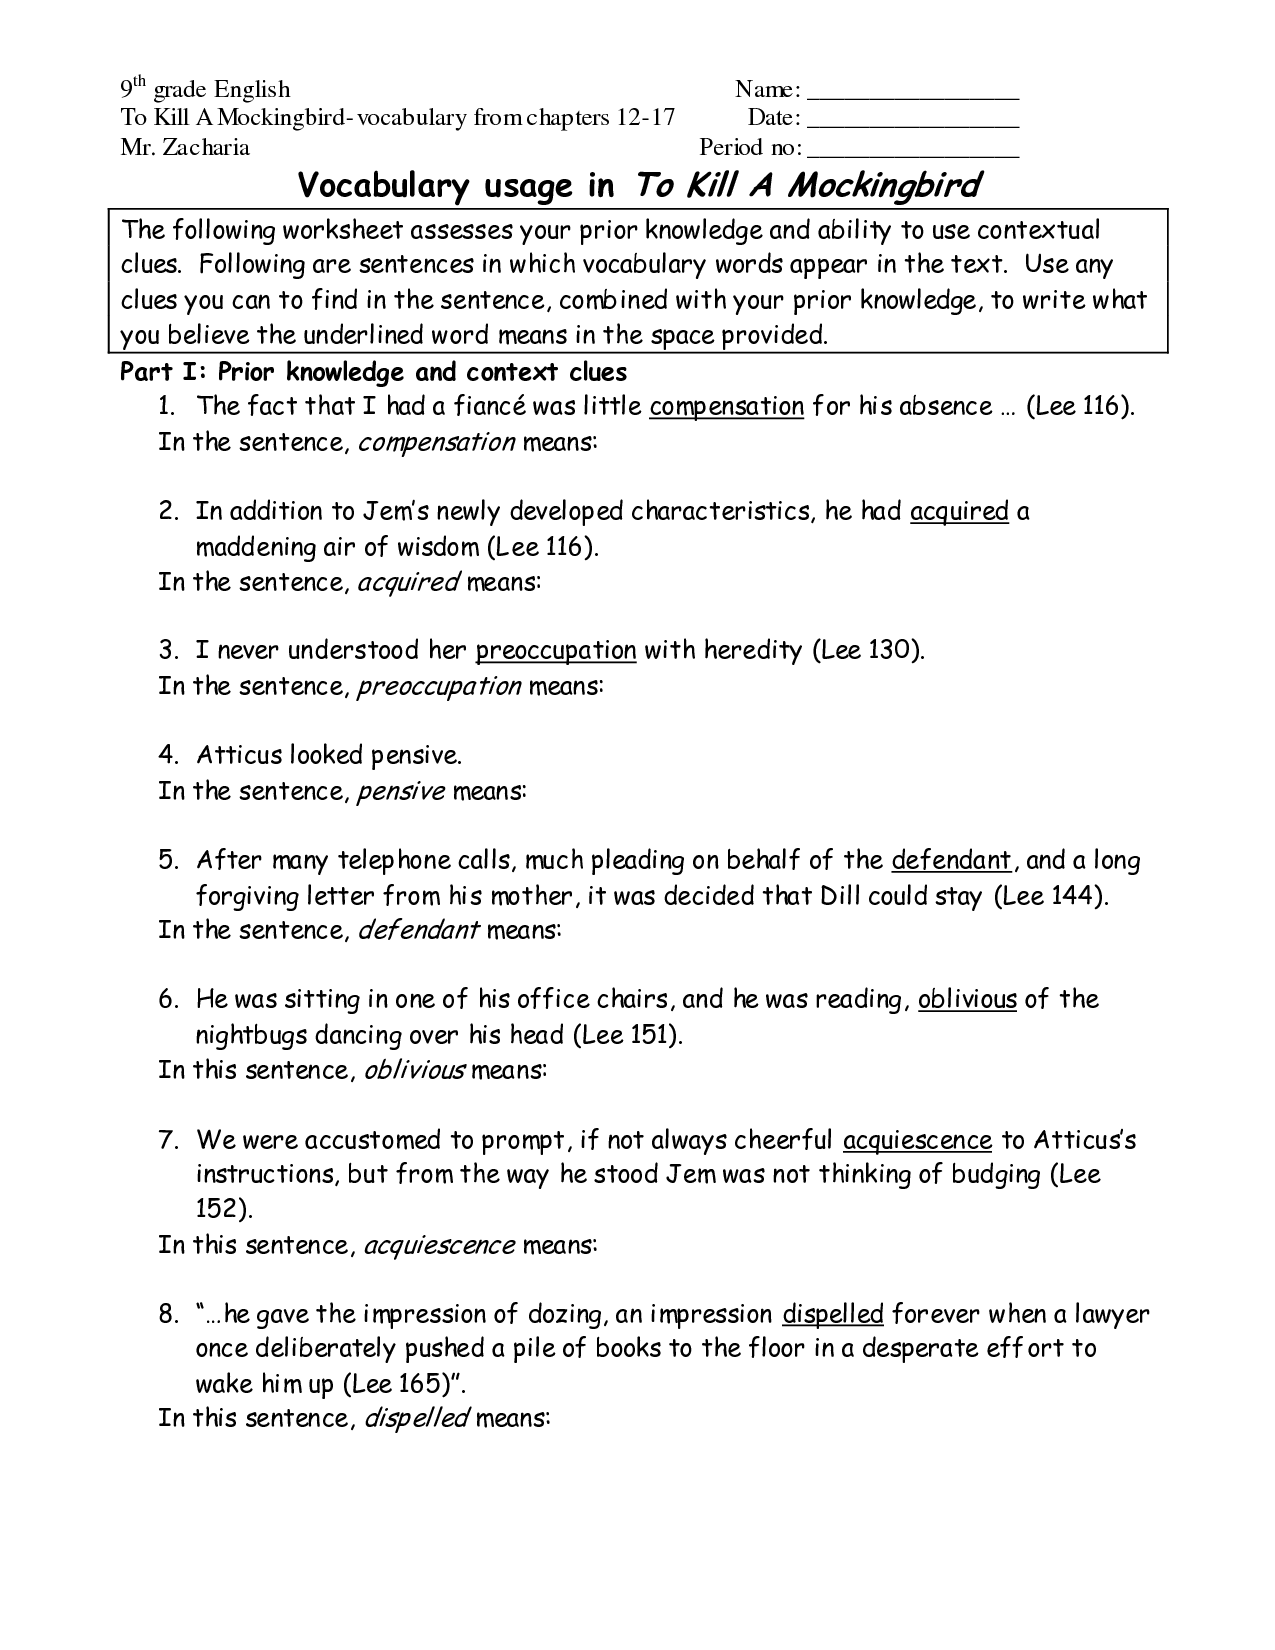 12 Best Images Of 9th Grade Physical Science Worksheets